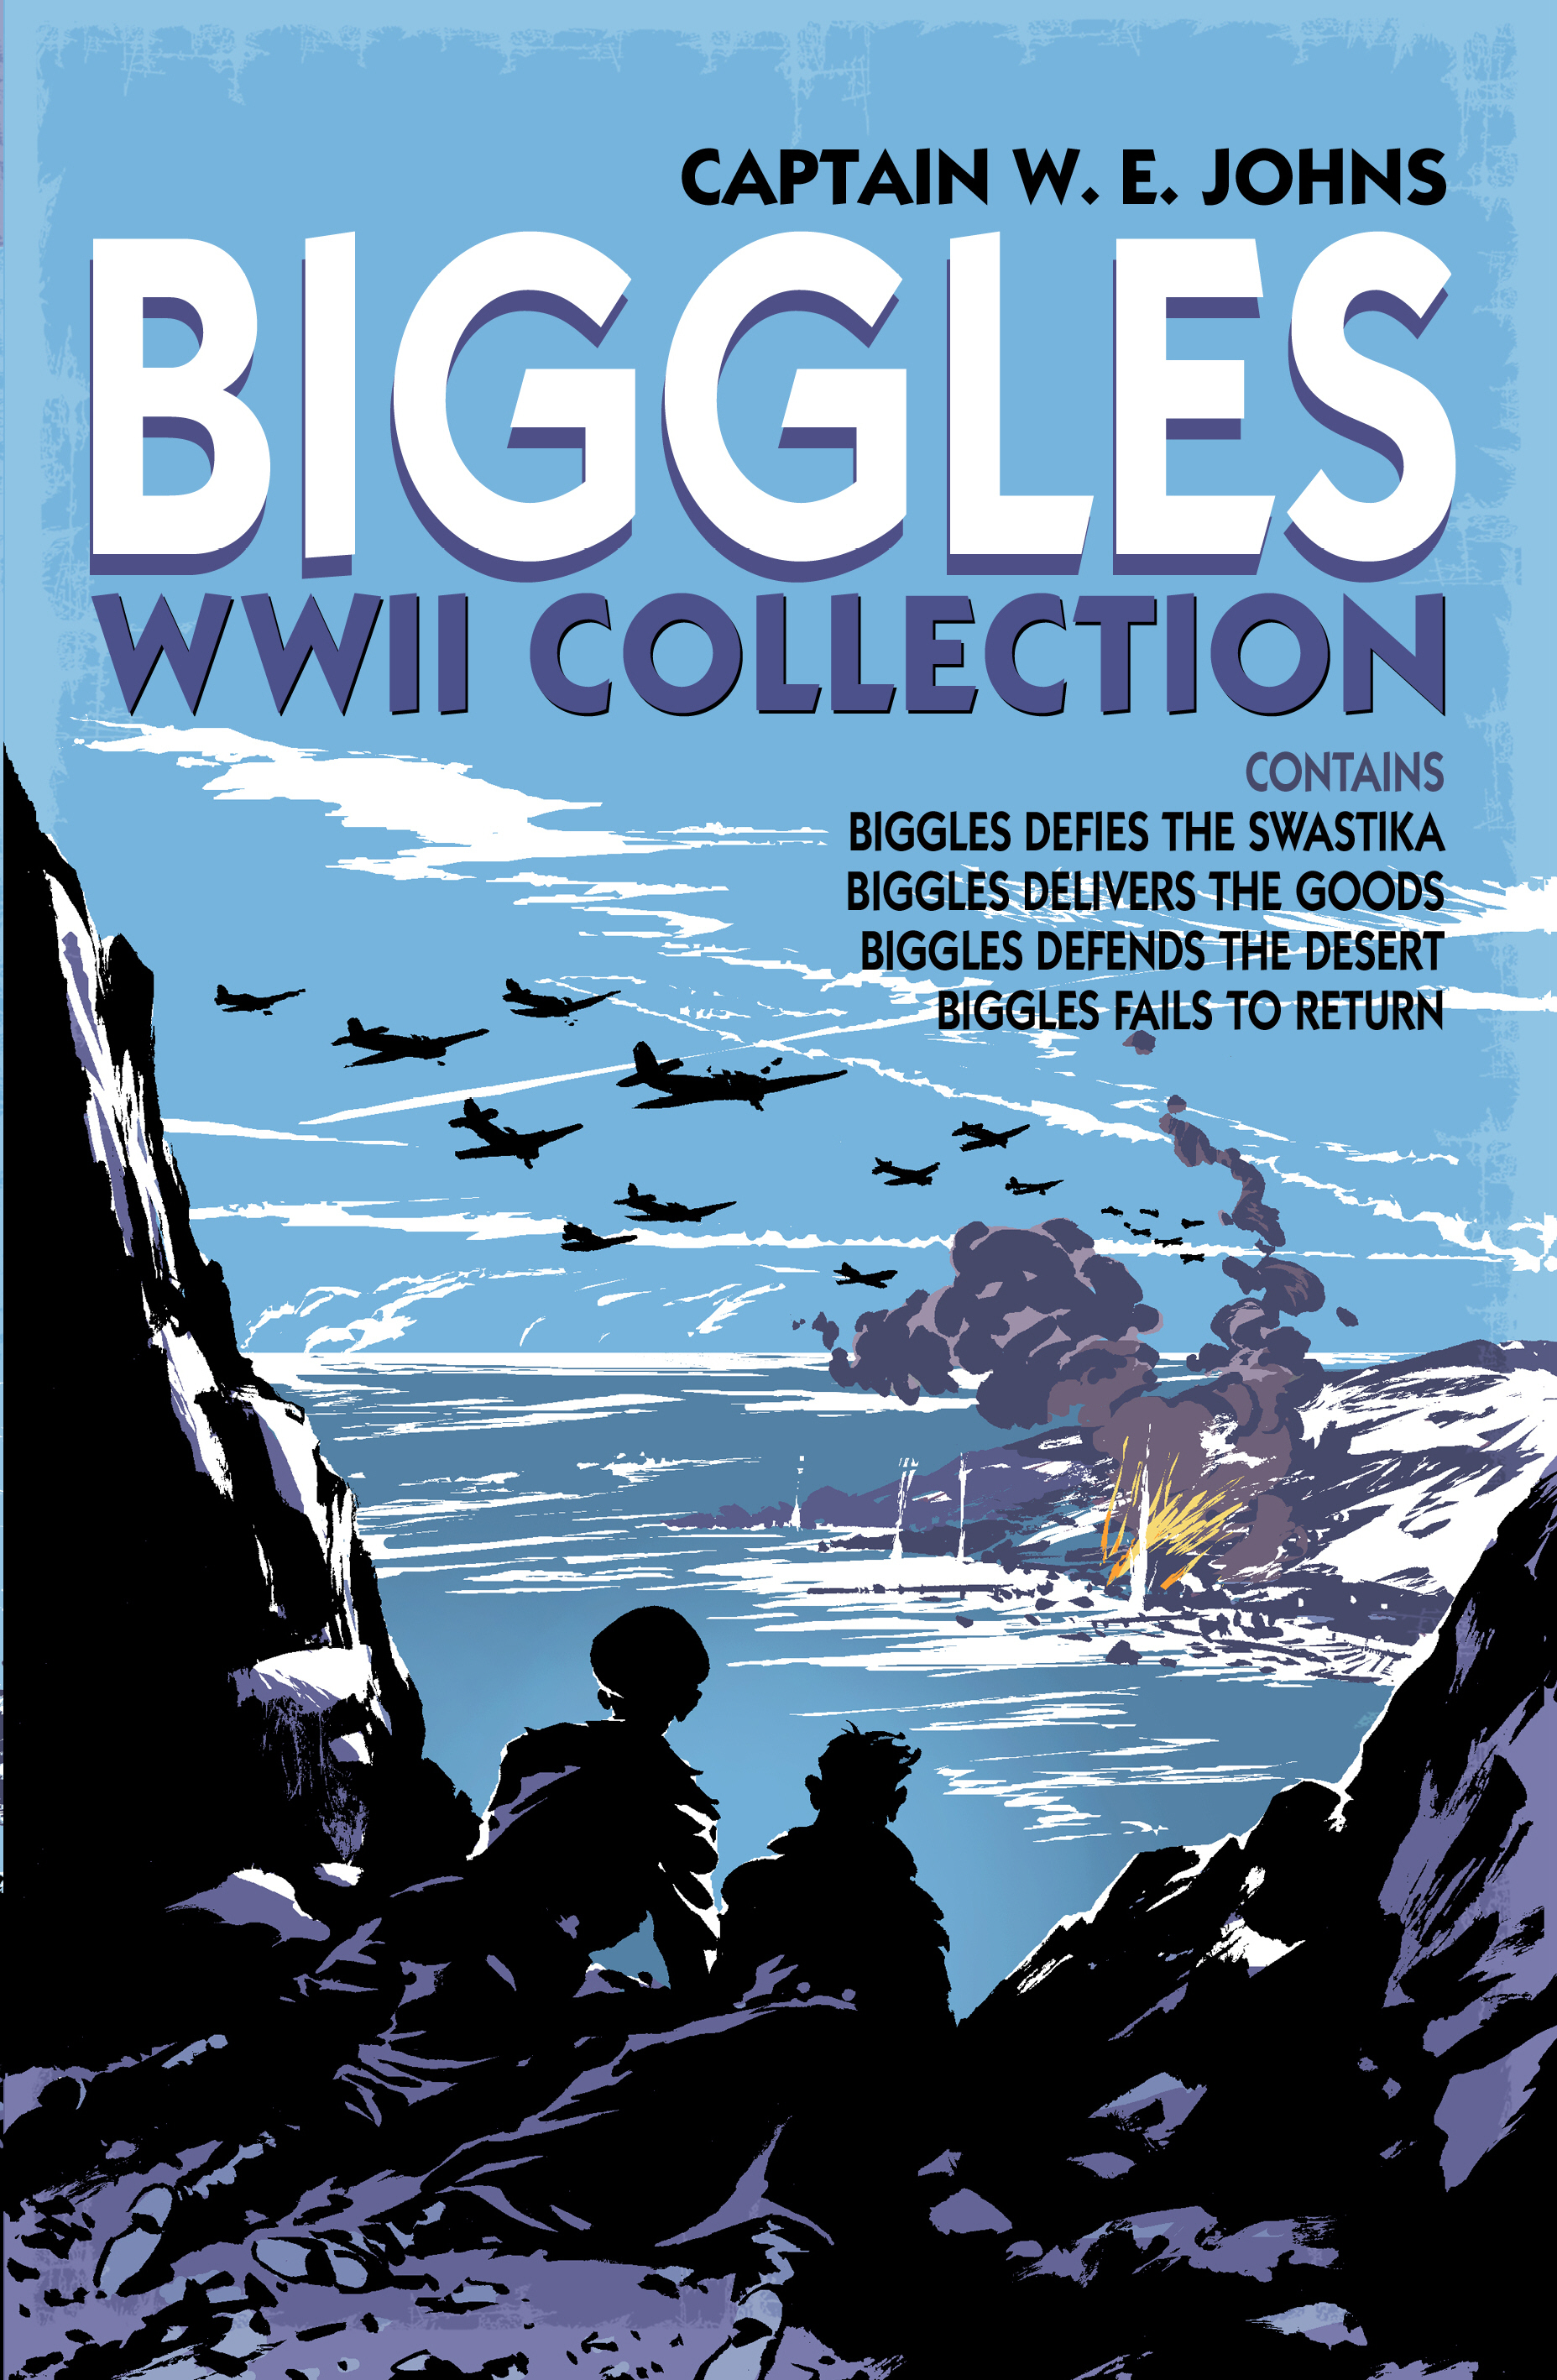 Biggles WWII Collection: Biggles Defies the Swastika,  Biggles Delivers the Goods,  Biggles Defends the Desert & Biggles Fails to Return Omnibus Edition